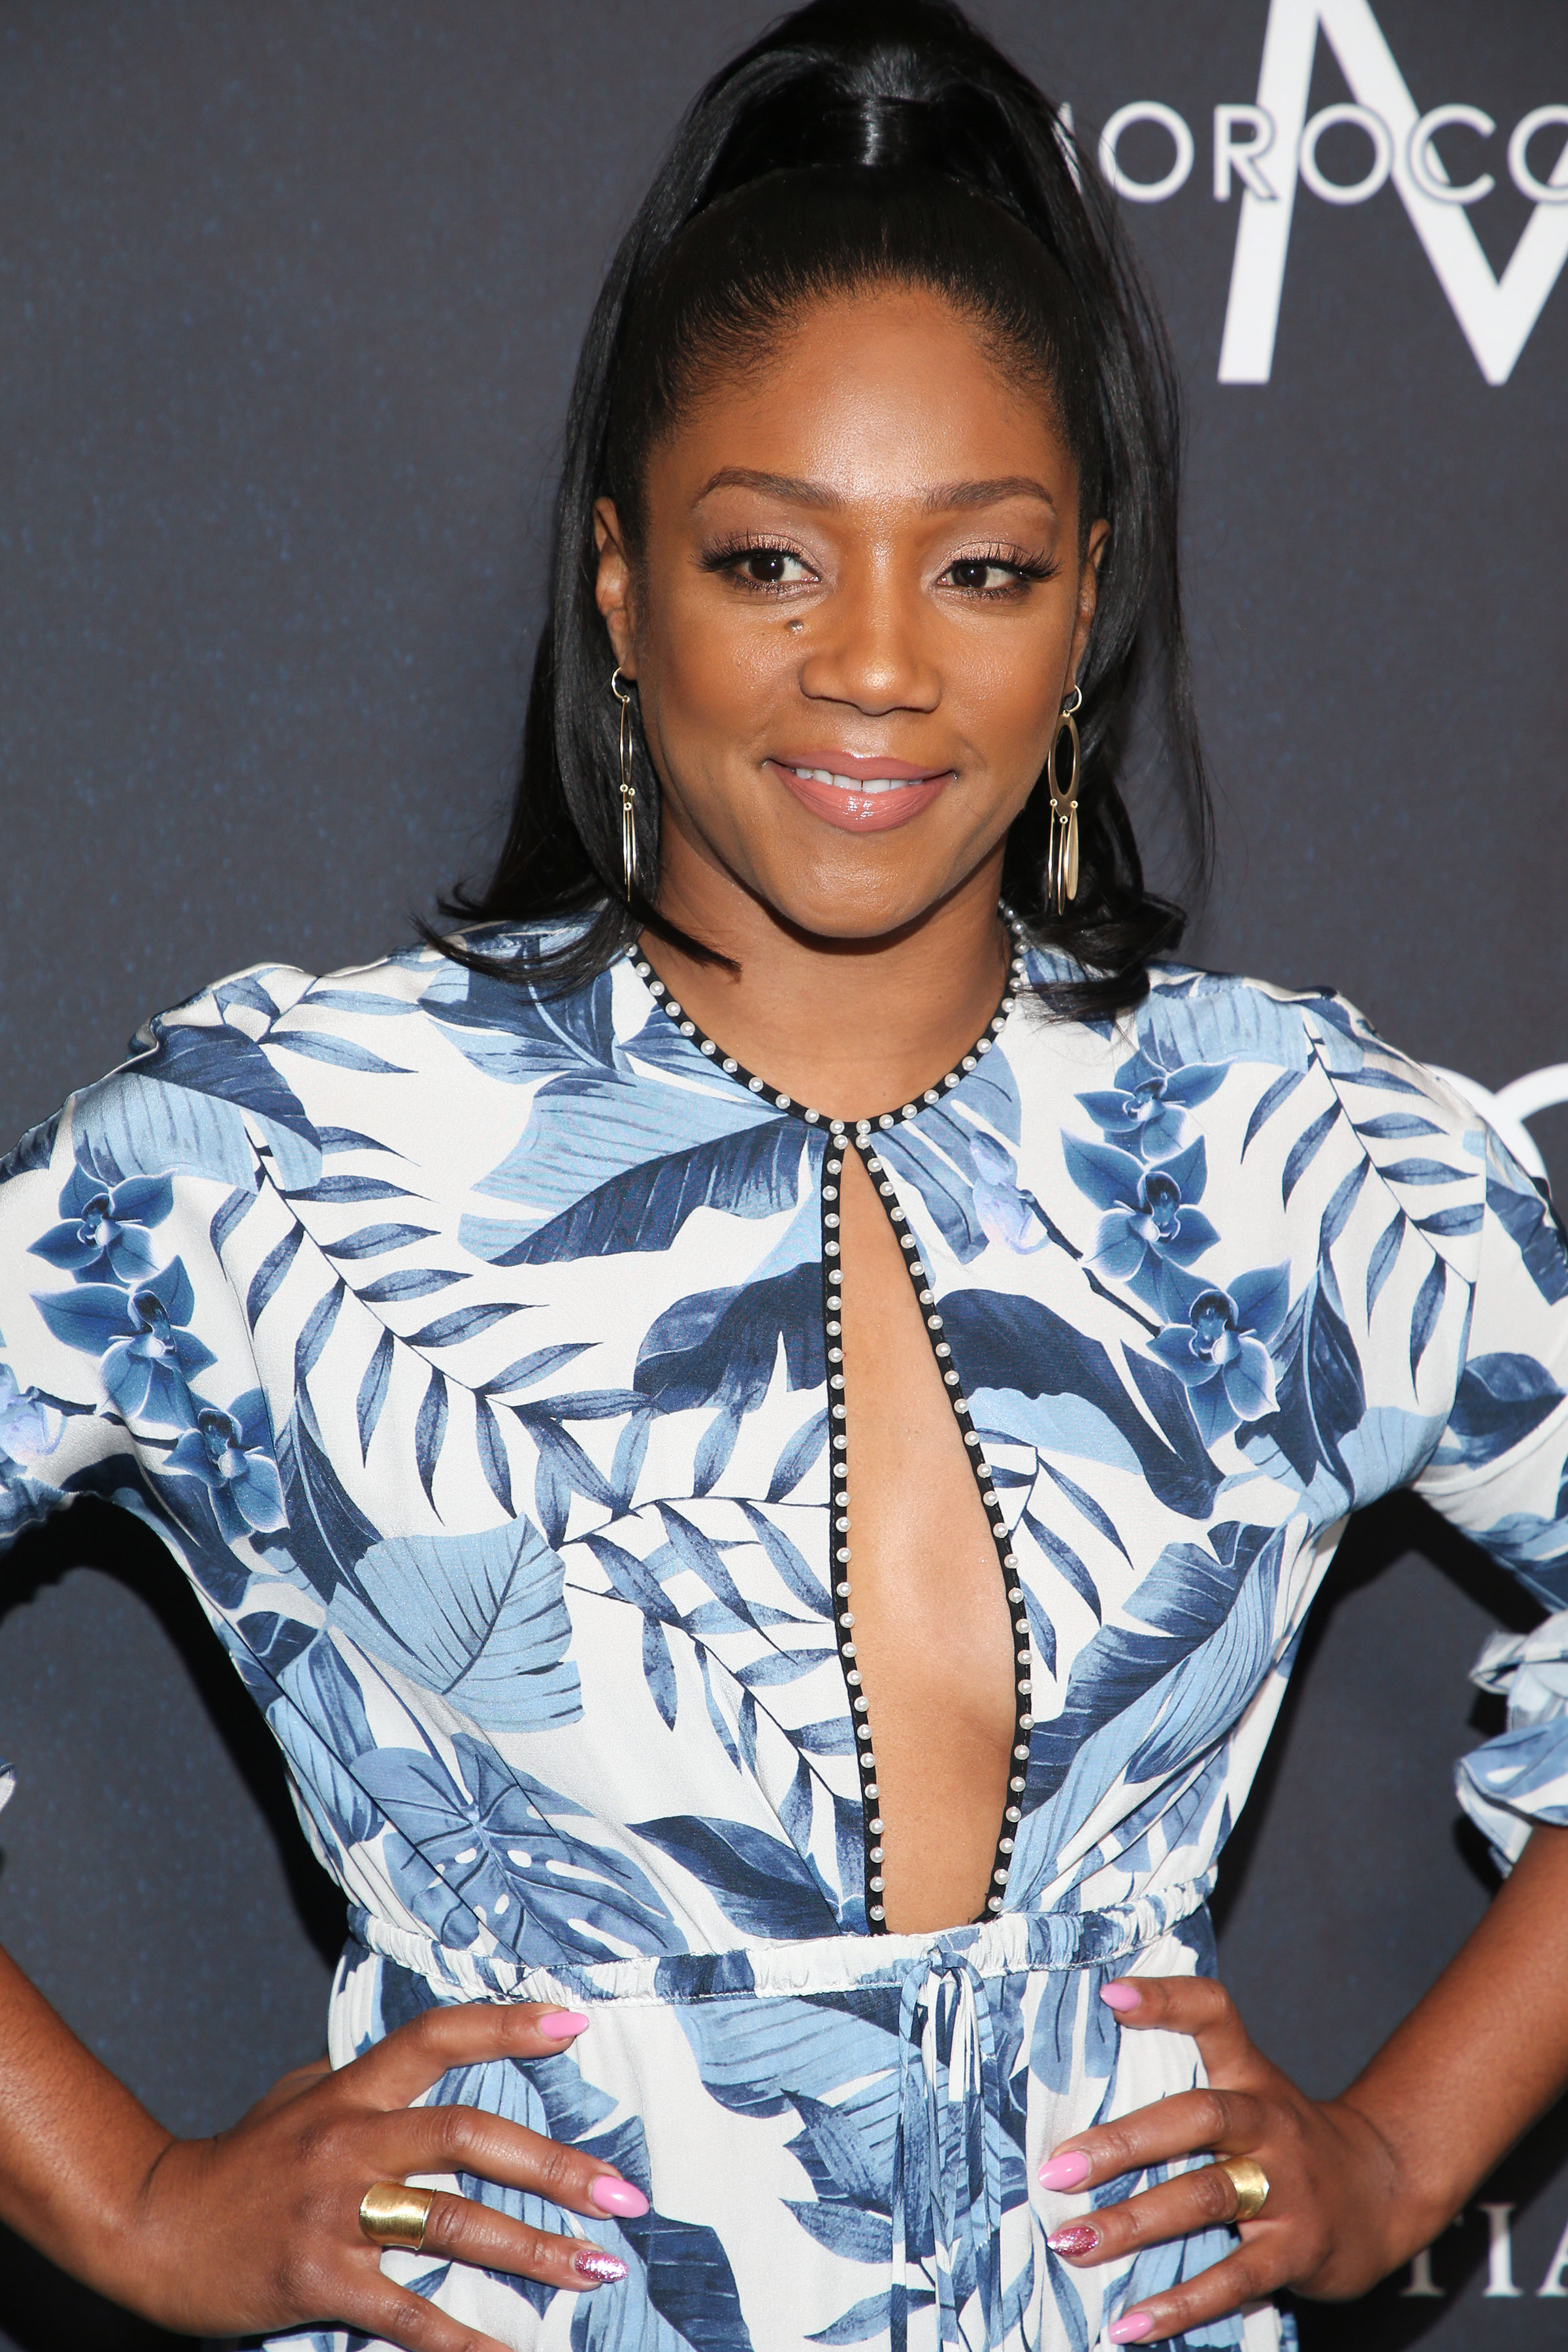 Image result for Tiffany Haddish To Host ABC's 'Kids Say The Darndest Things'